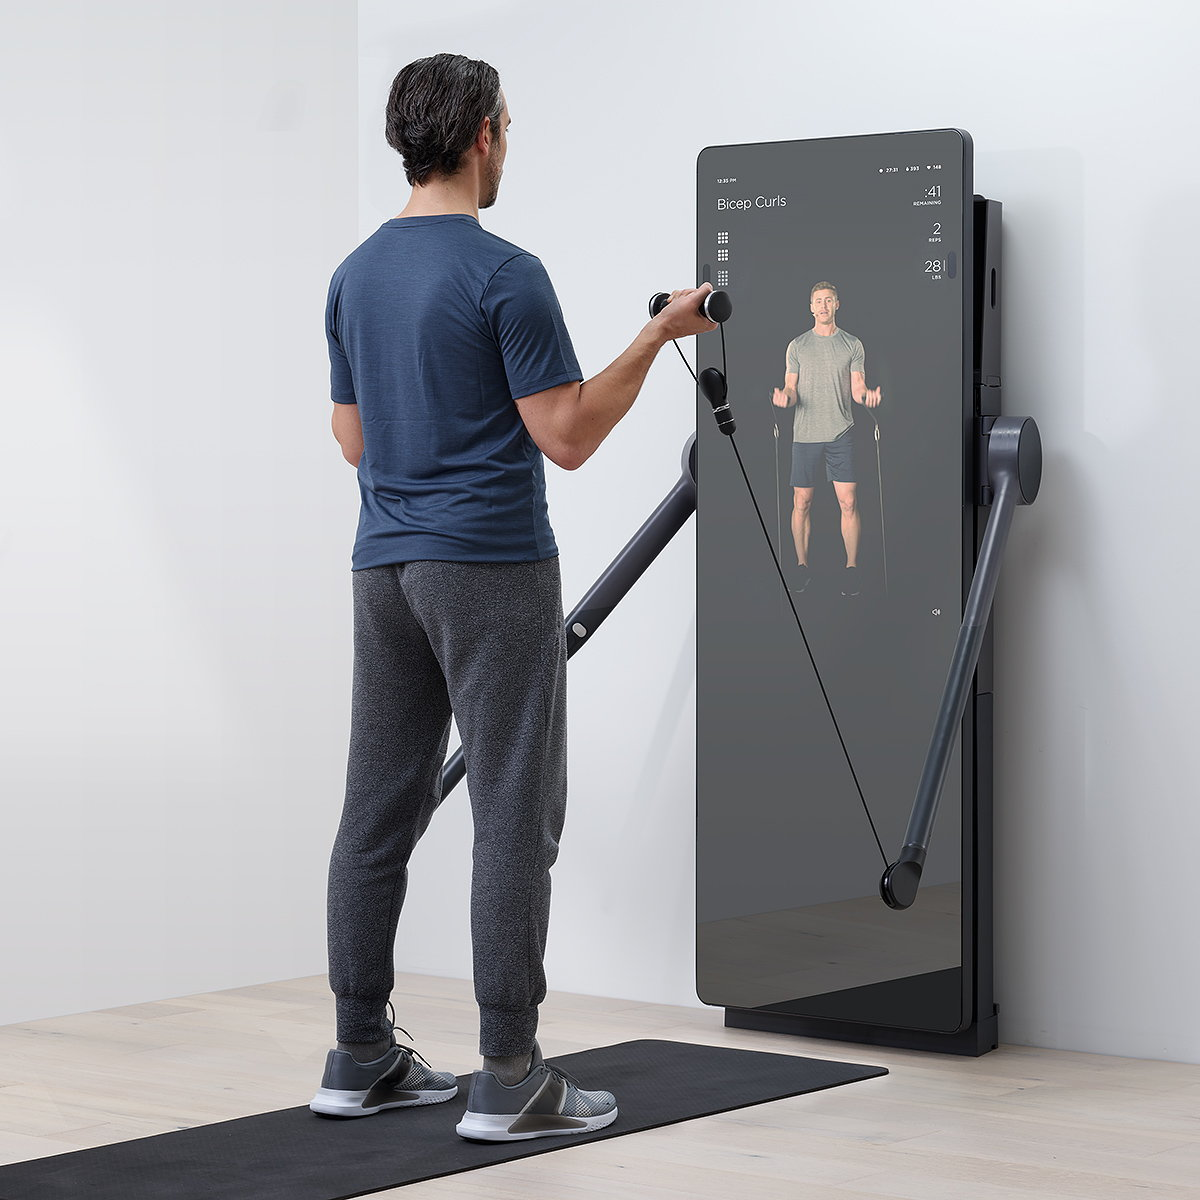 fuseproject Unveils All-in-one Home Fitness System 'Forme'